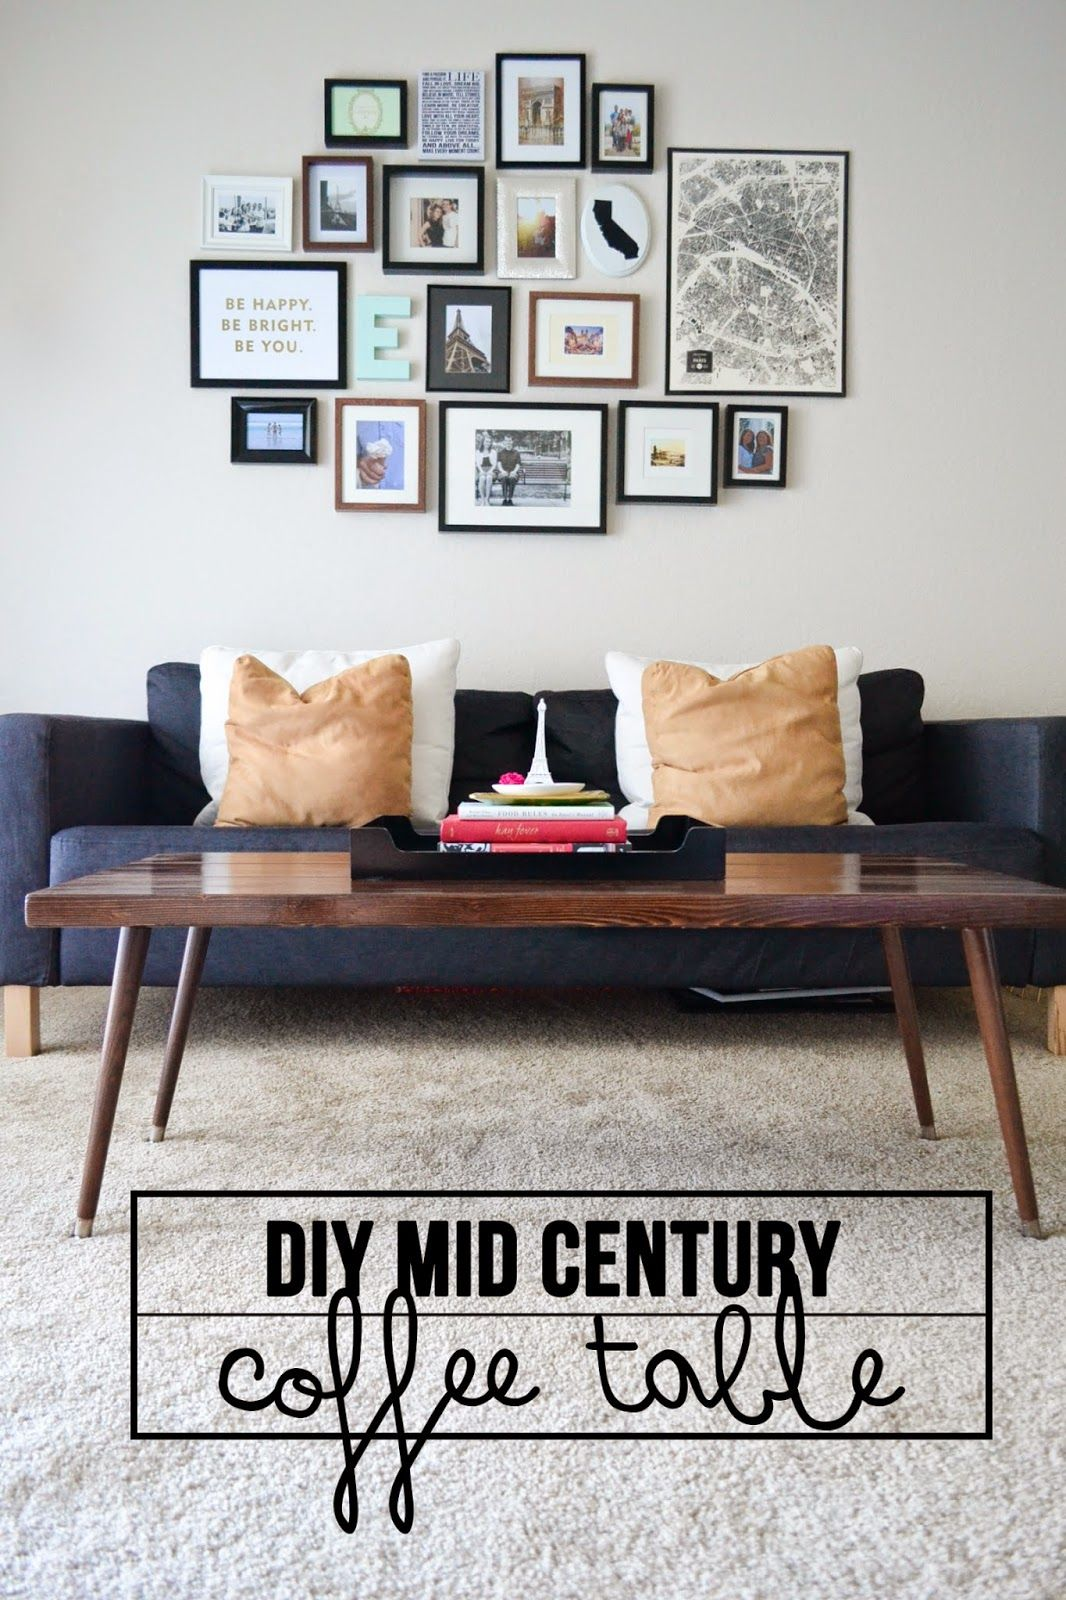 Diy Mid Century Coffee Table In 2019 Home Diy Pinterest Mid